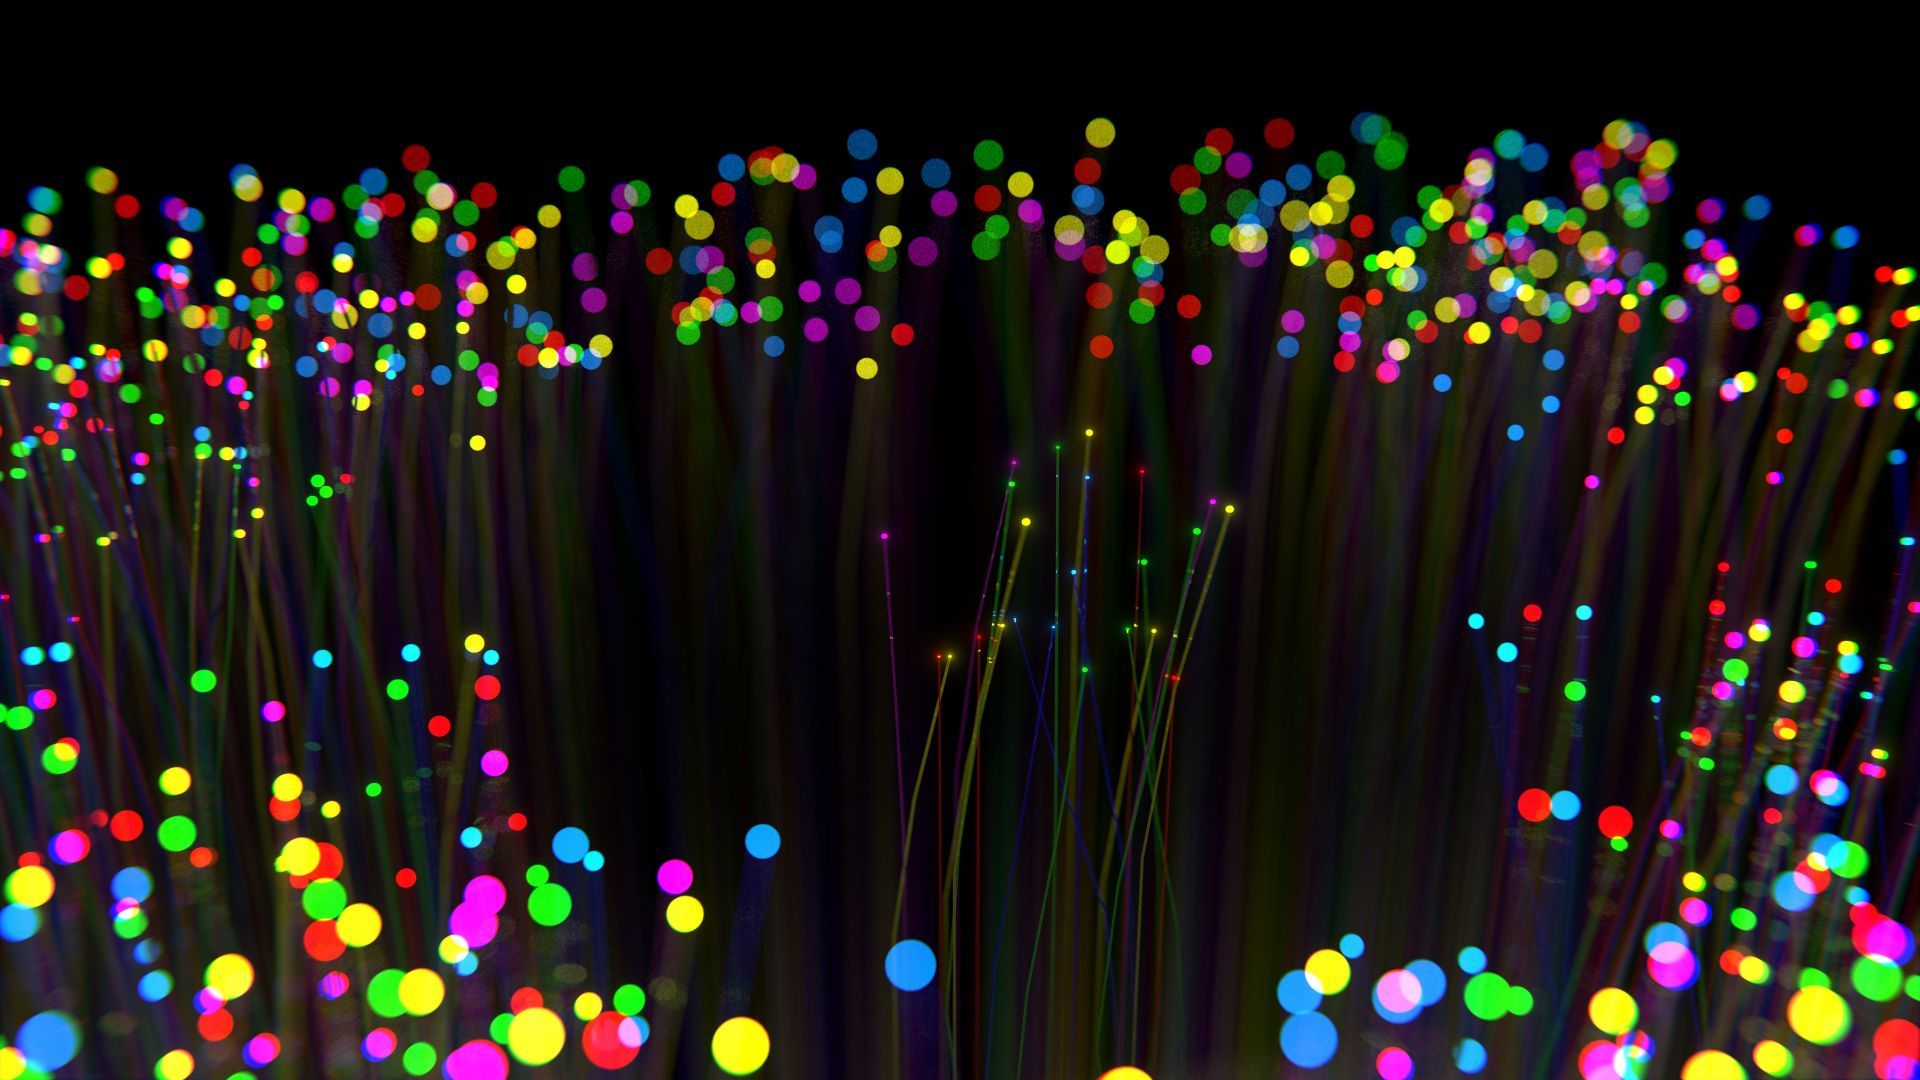 lights, colorful, dark, 4K (horizontal)